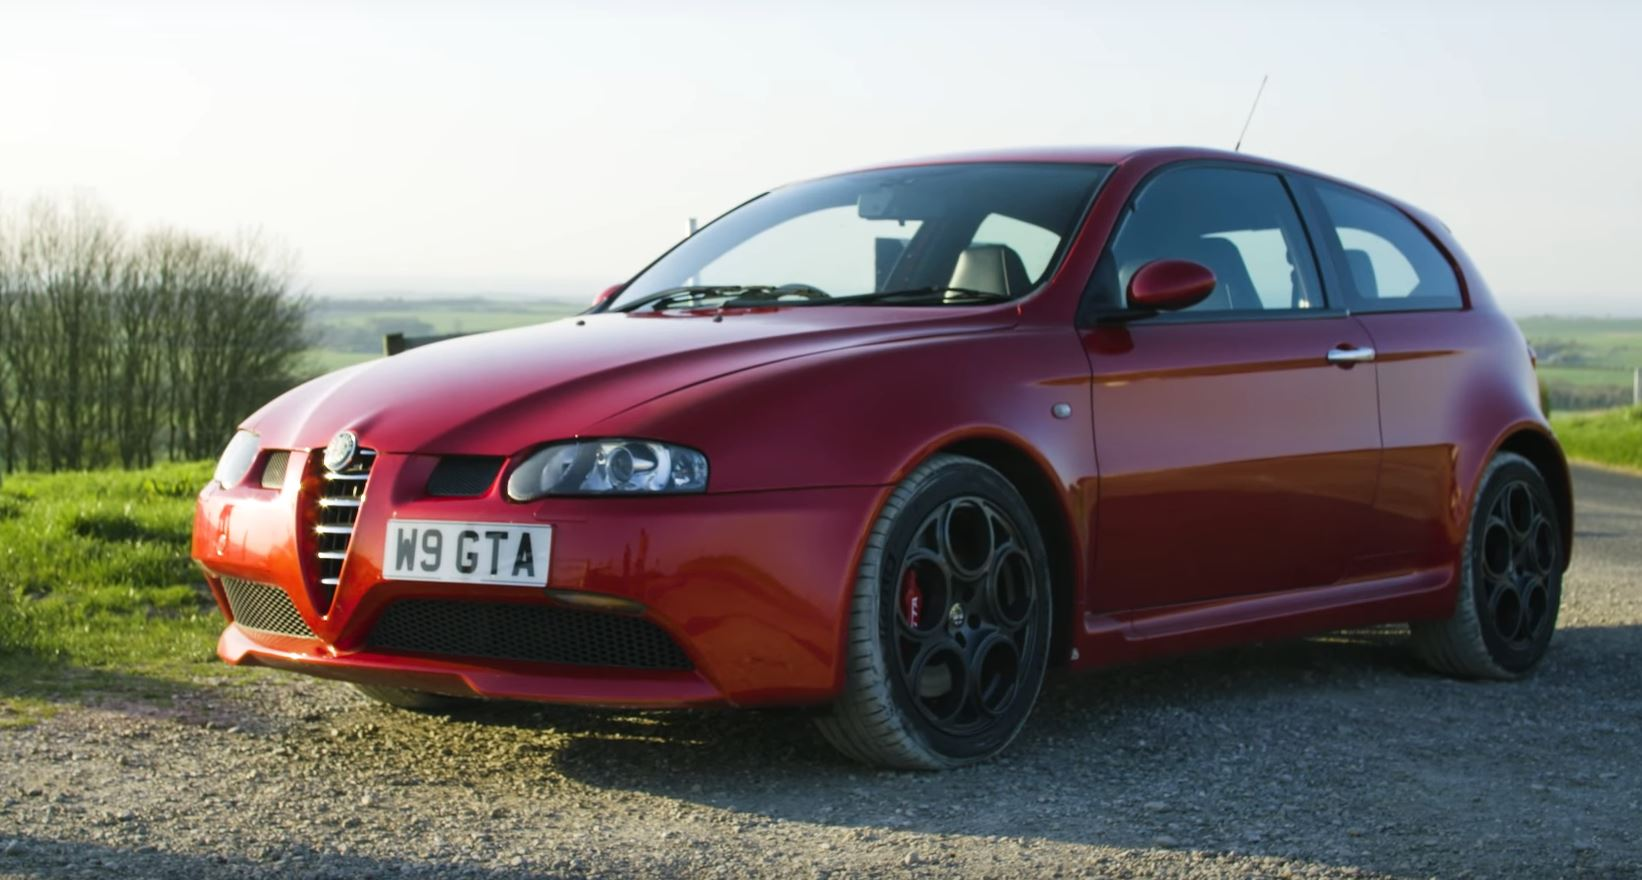 Alfa 147 GTA Is Awesome When Upgraded, Deserves More Love